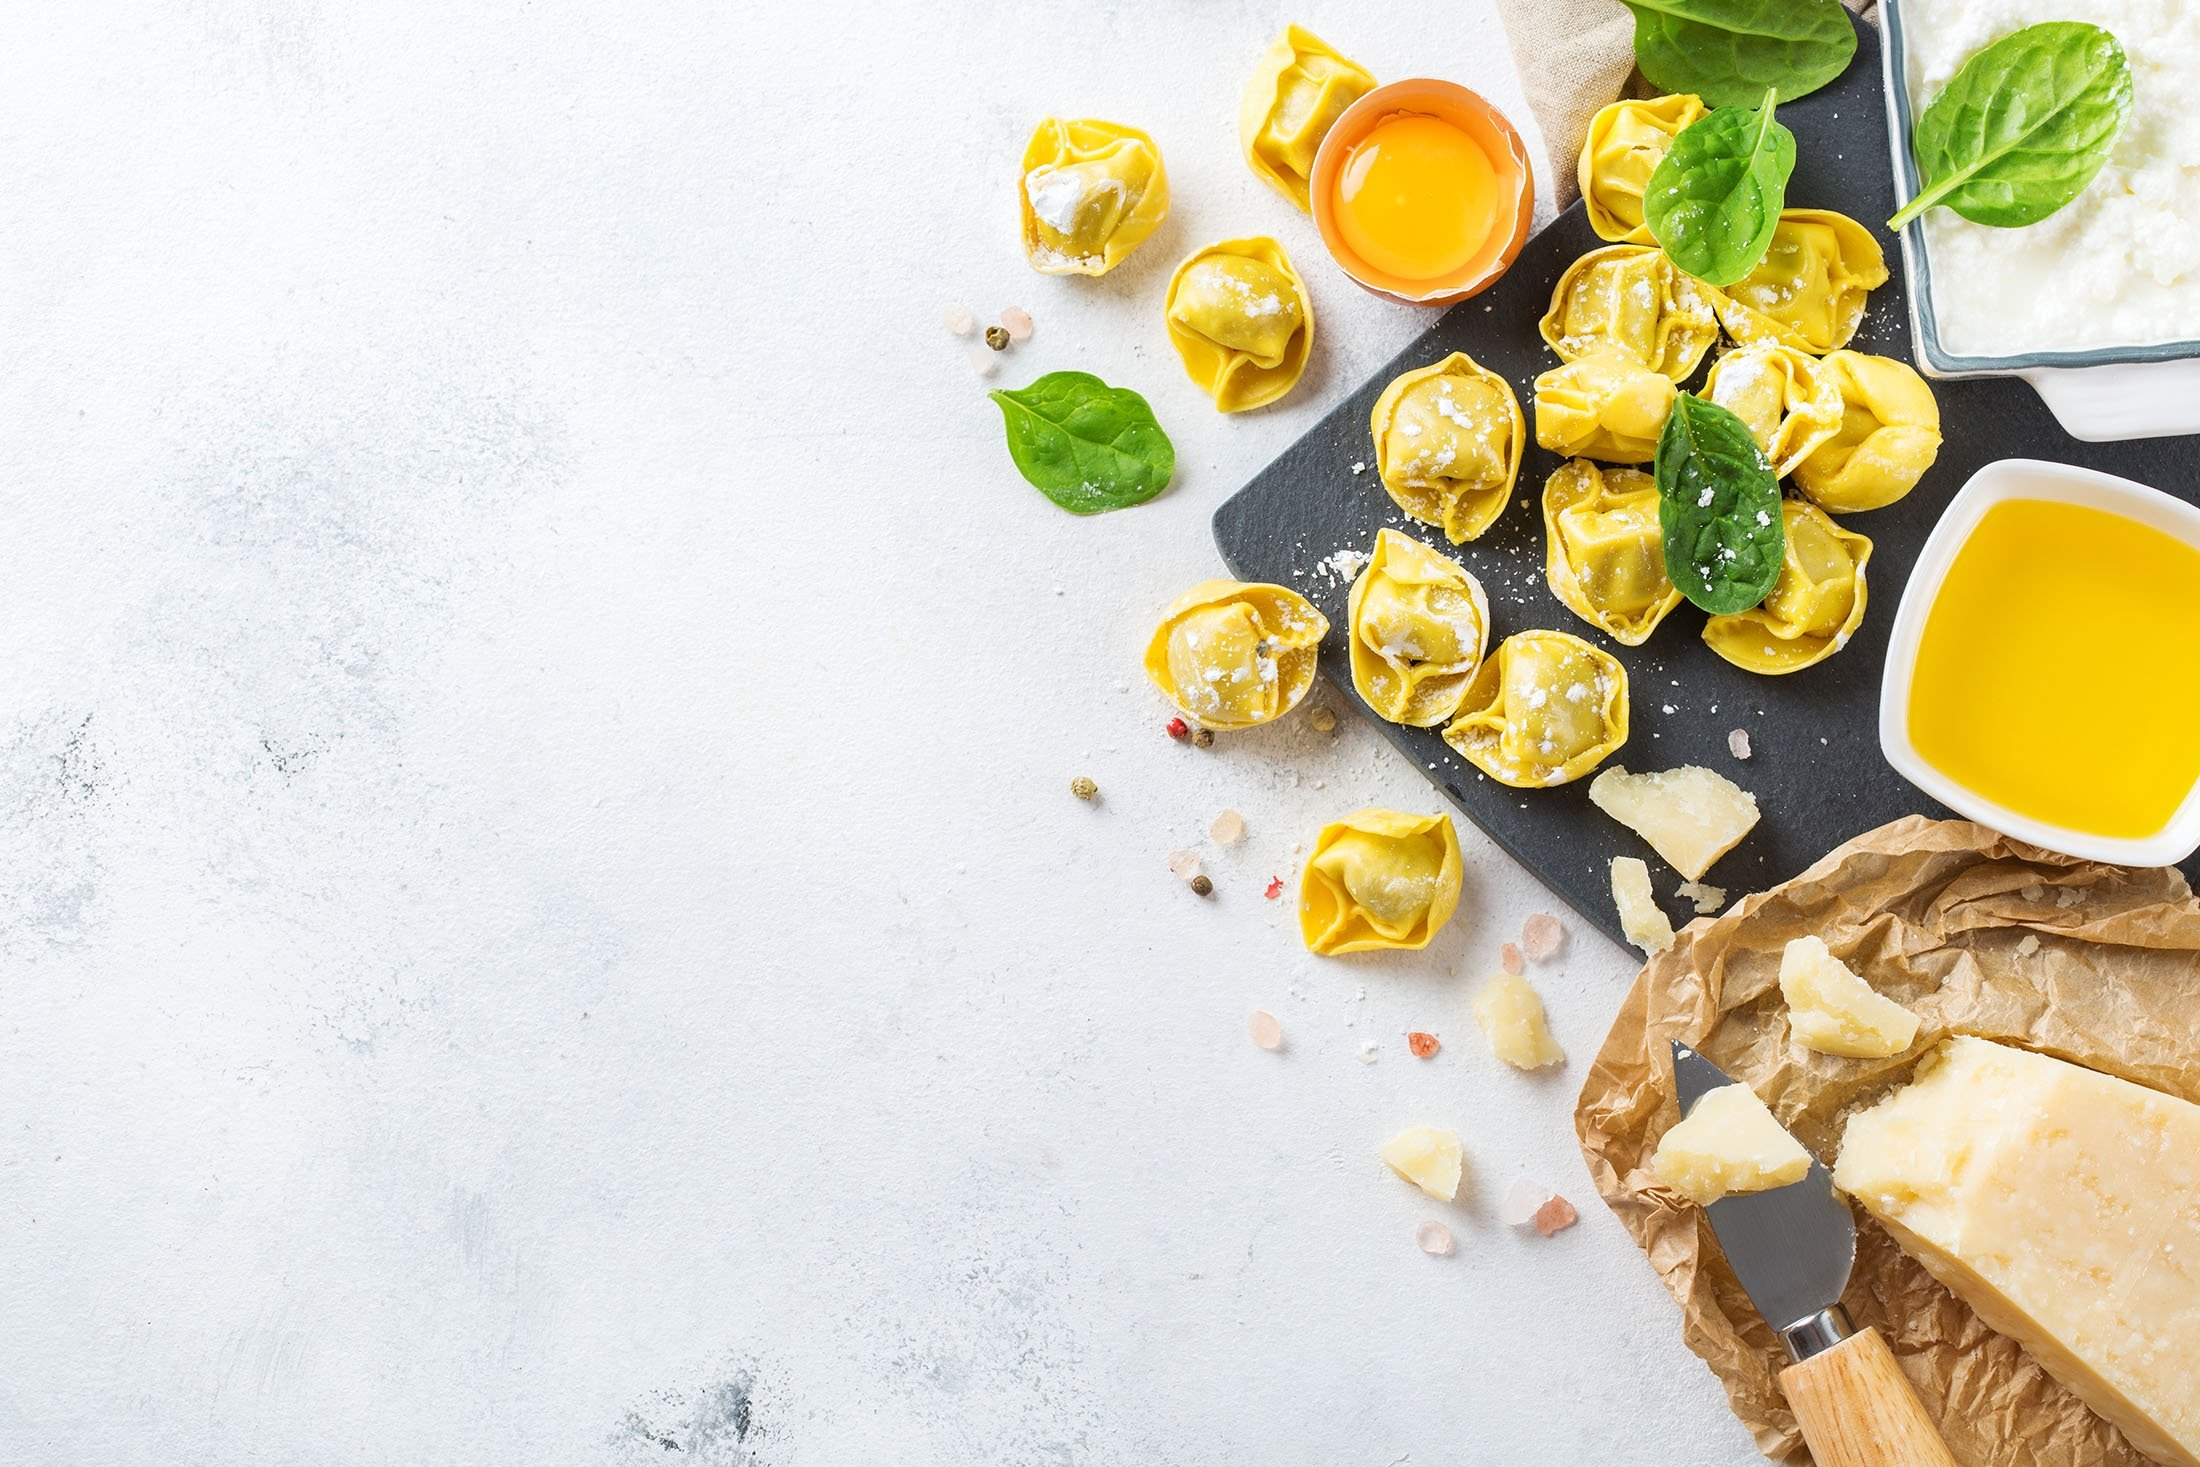 With a bit of meat, leafy greens or cheese, you too can make your own homemade tortellini. (Shutterstock Photo)